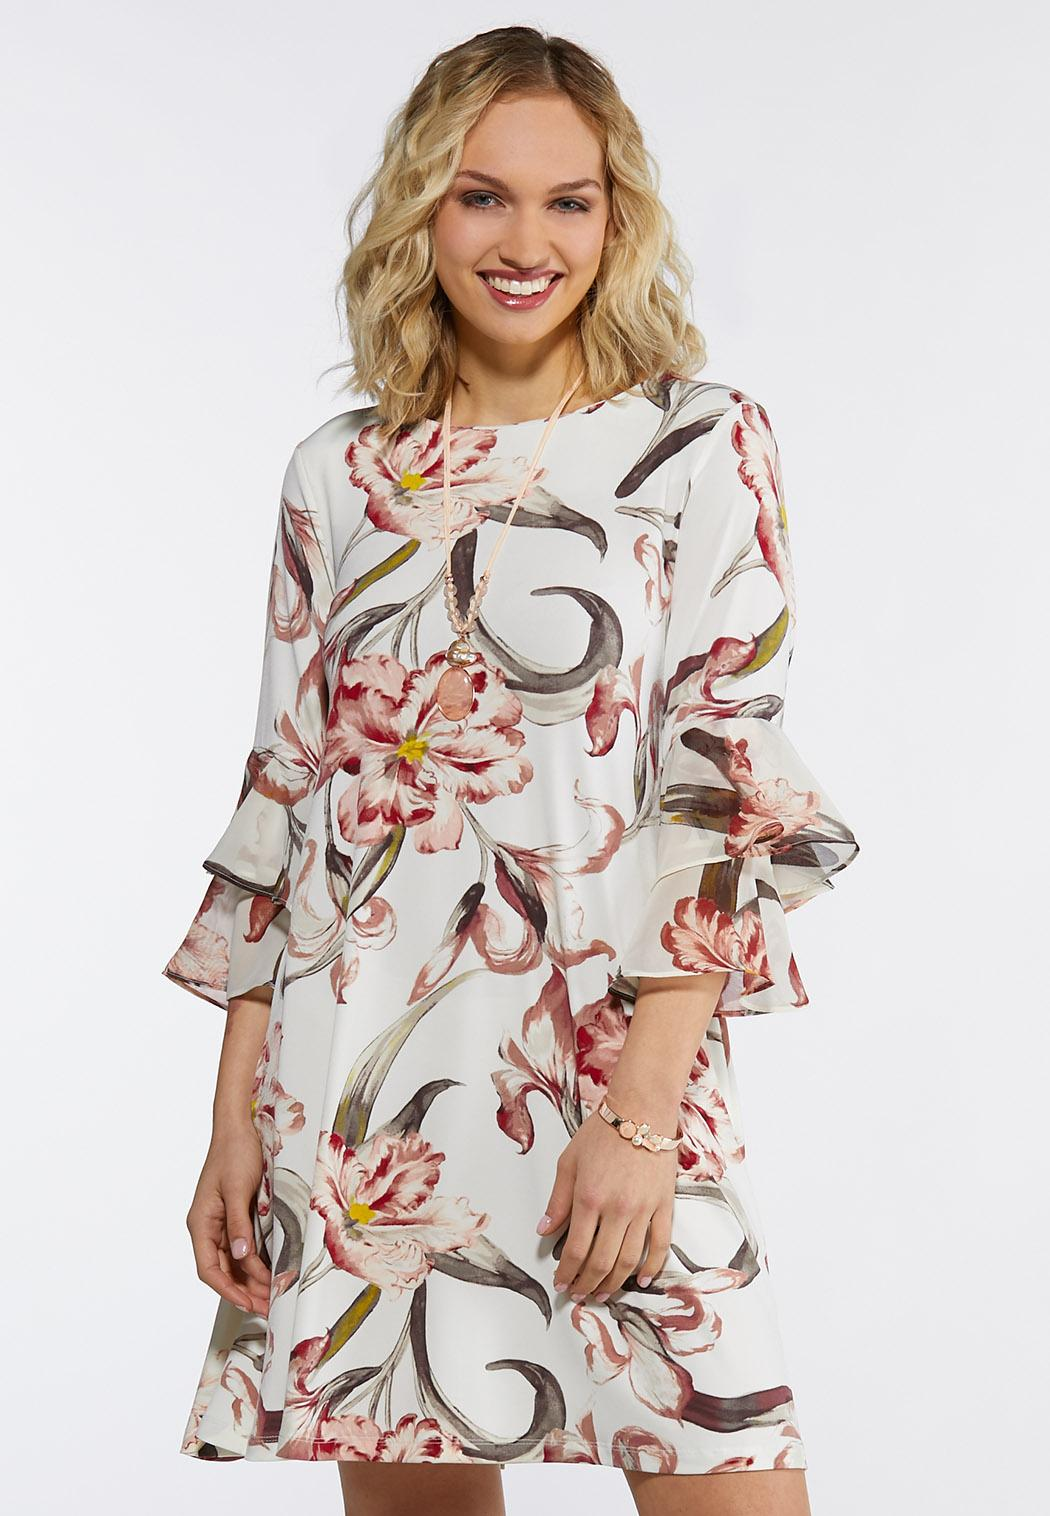 Plus Size Ivory Blossom Swing Dress A-line & Swing Cato Fashions